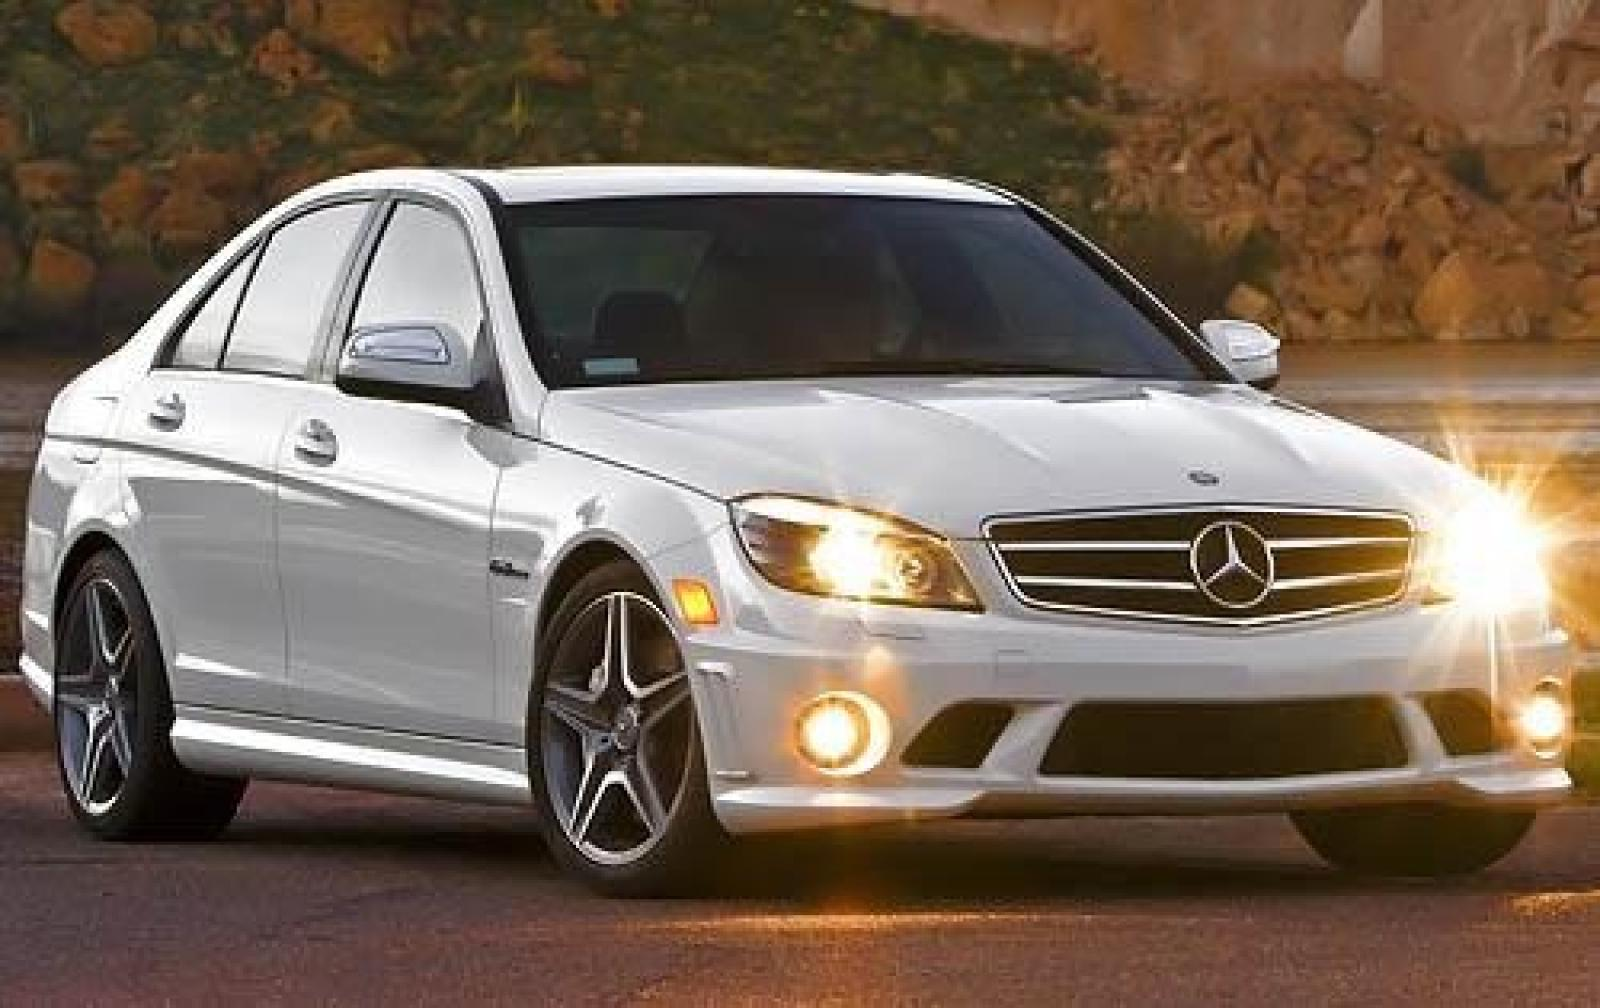 2008 mercedes benz c class information and photos zombiedrive. Black Bedroom Furniture Sets. Home Design Ideas